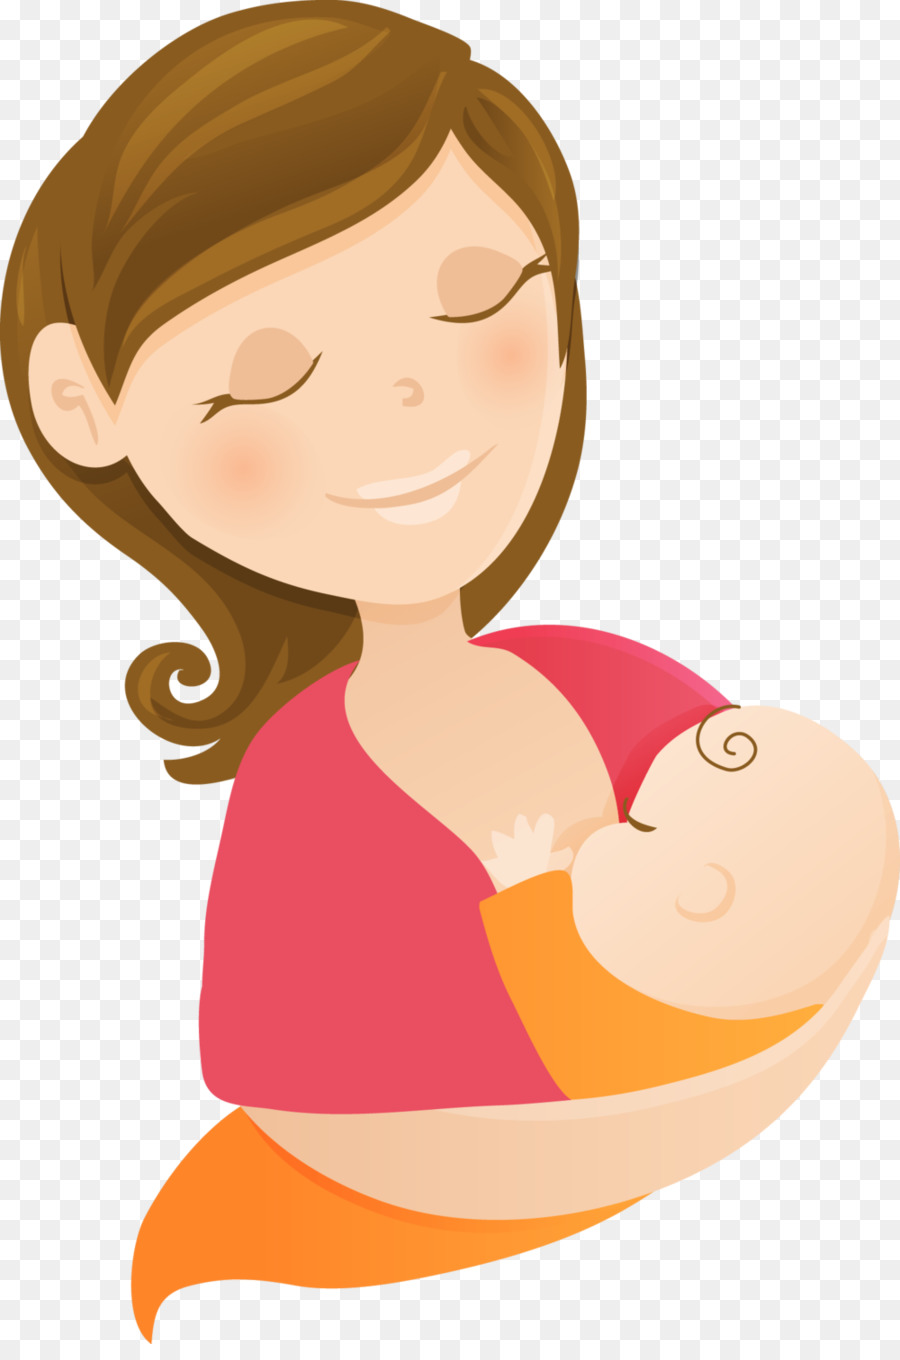 Breast milk infant png. Boobs clipart mother breastfeeding baby